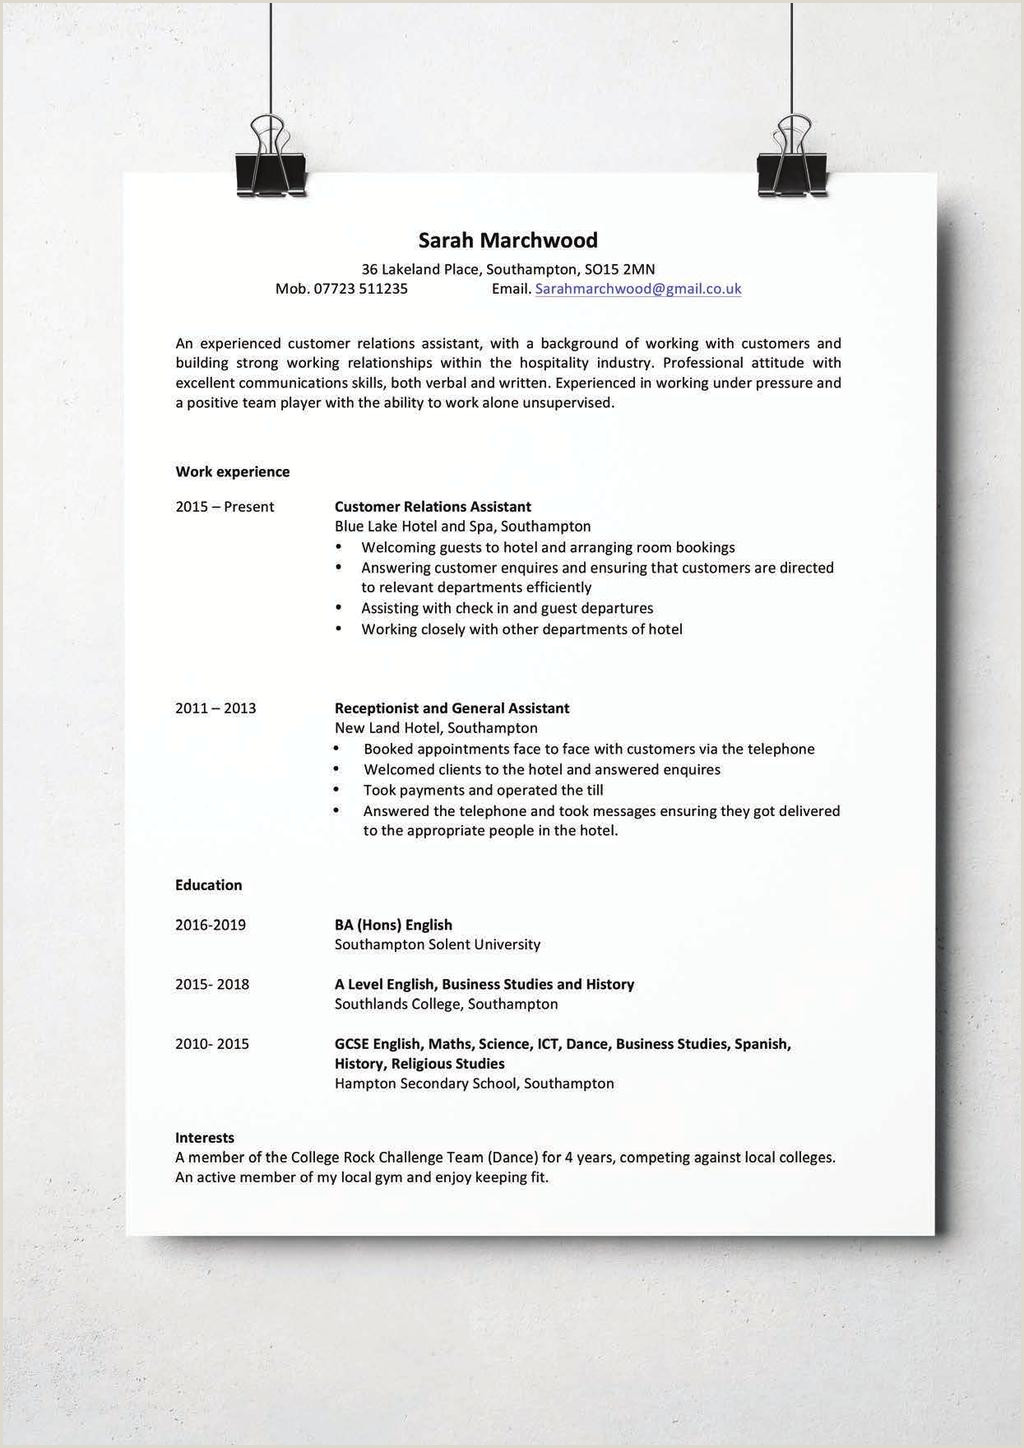 CV & Application Guide PDF